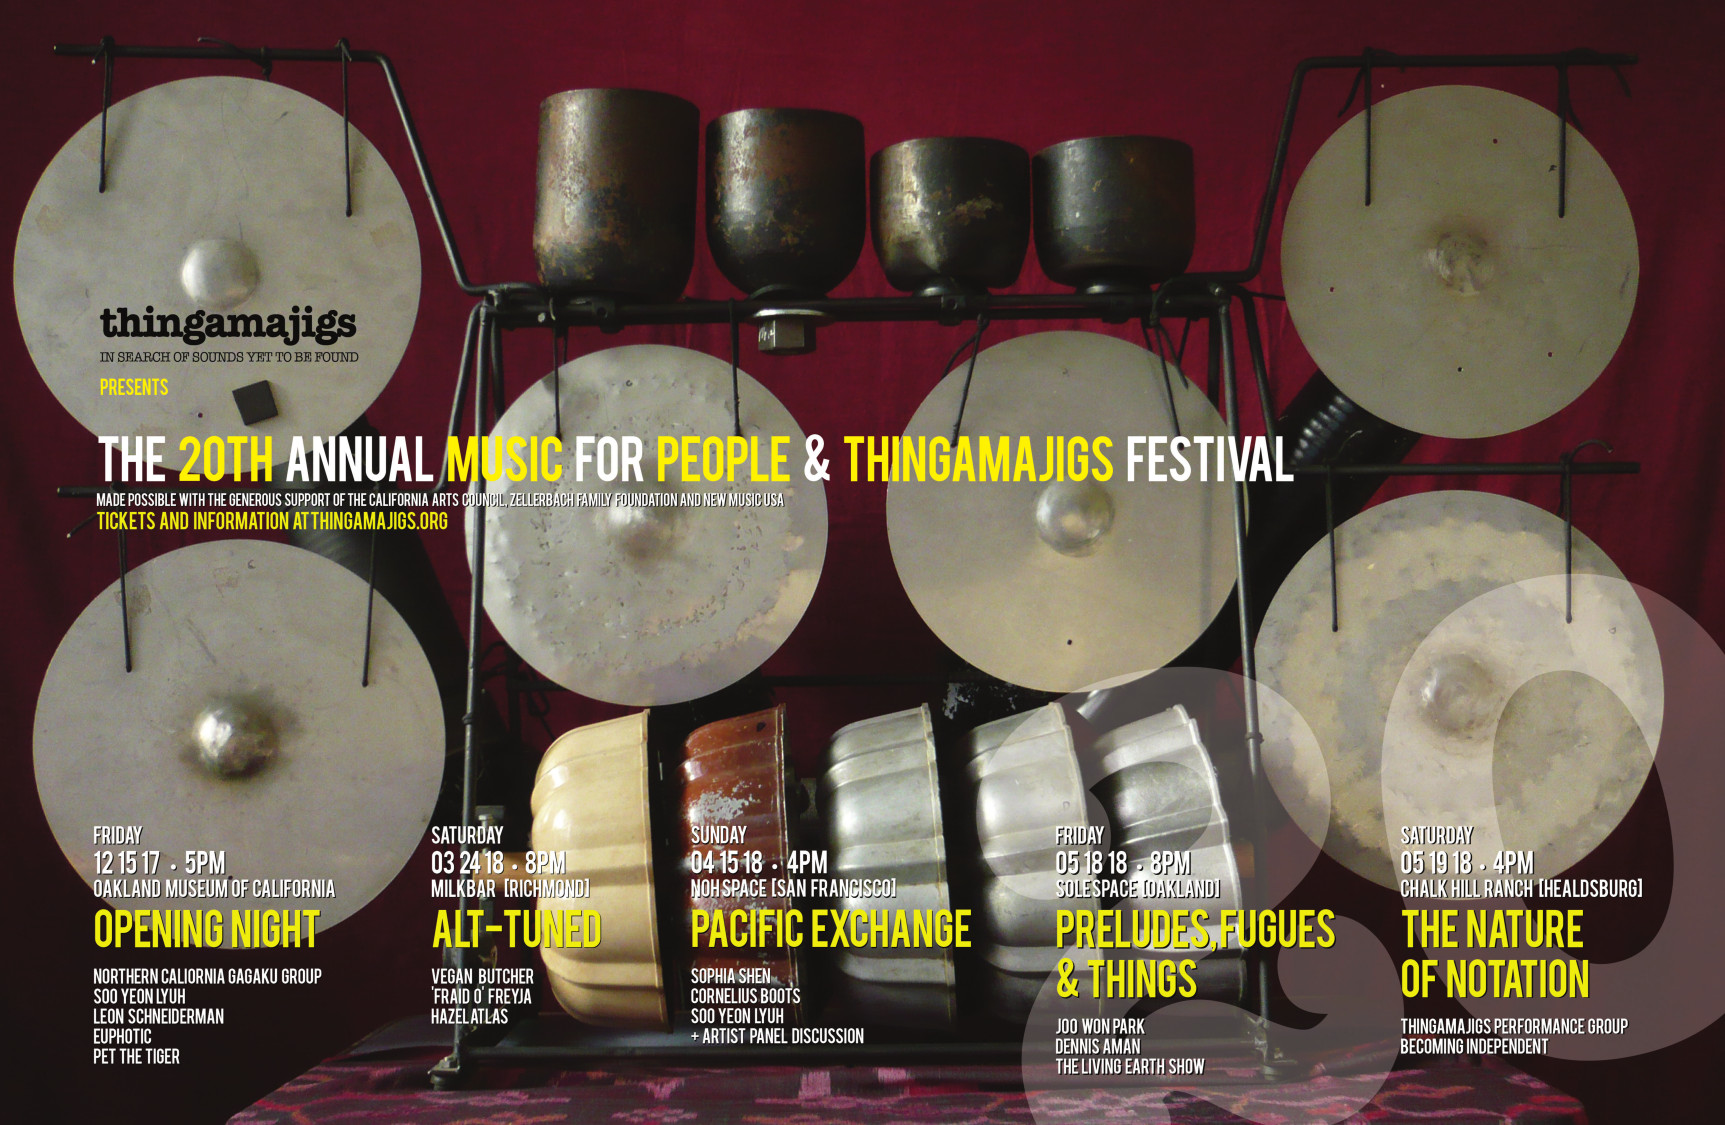 20th Annual Music for People & Thingamajigs Festival     Dec 15, 2017 - May 18, 2018